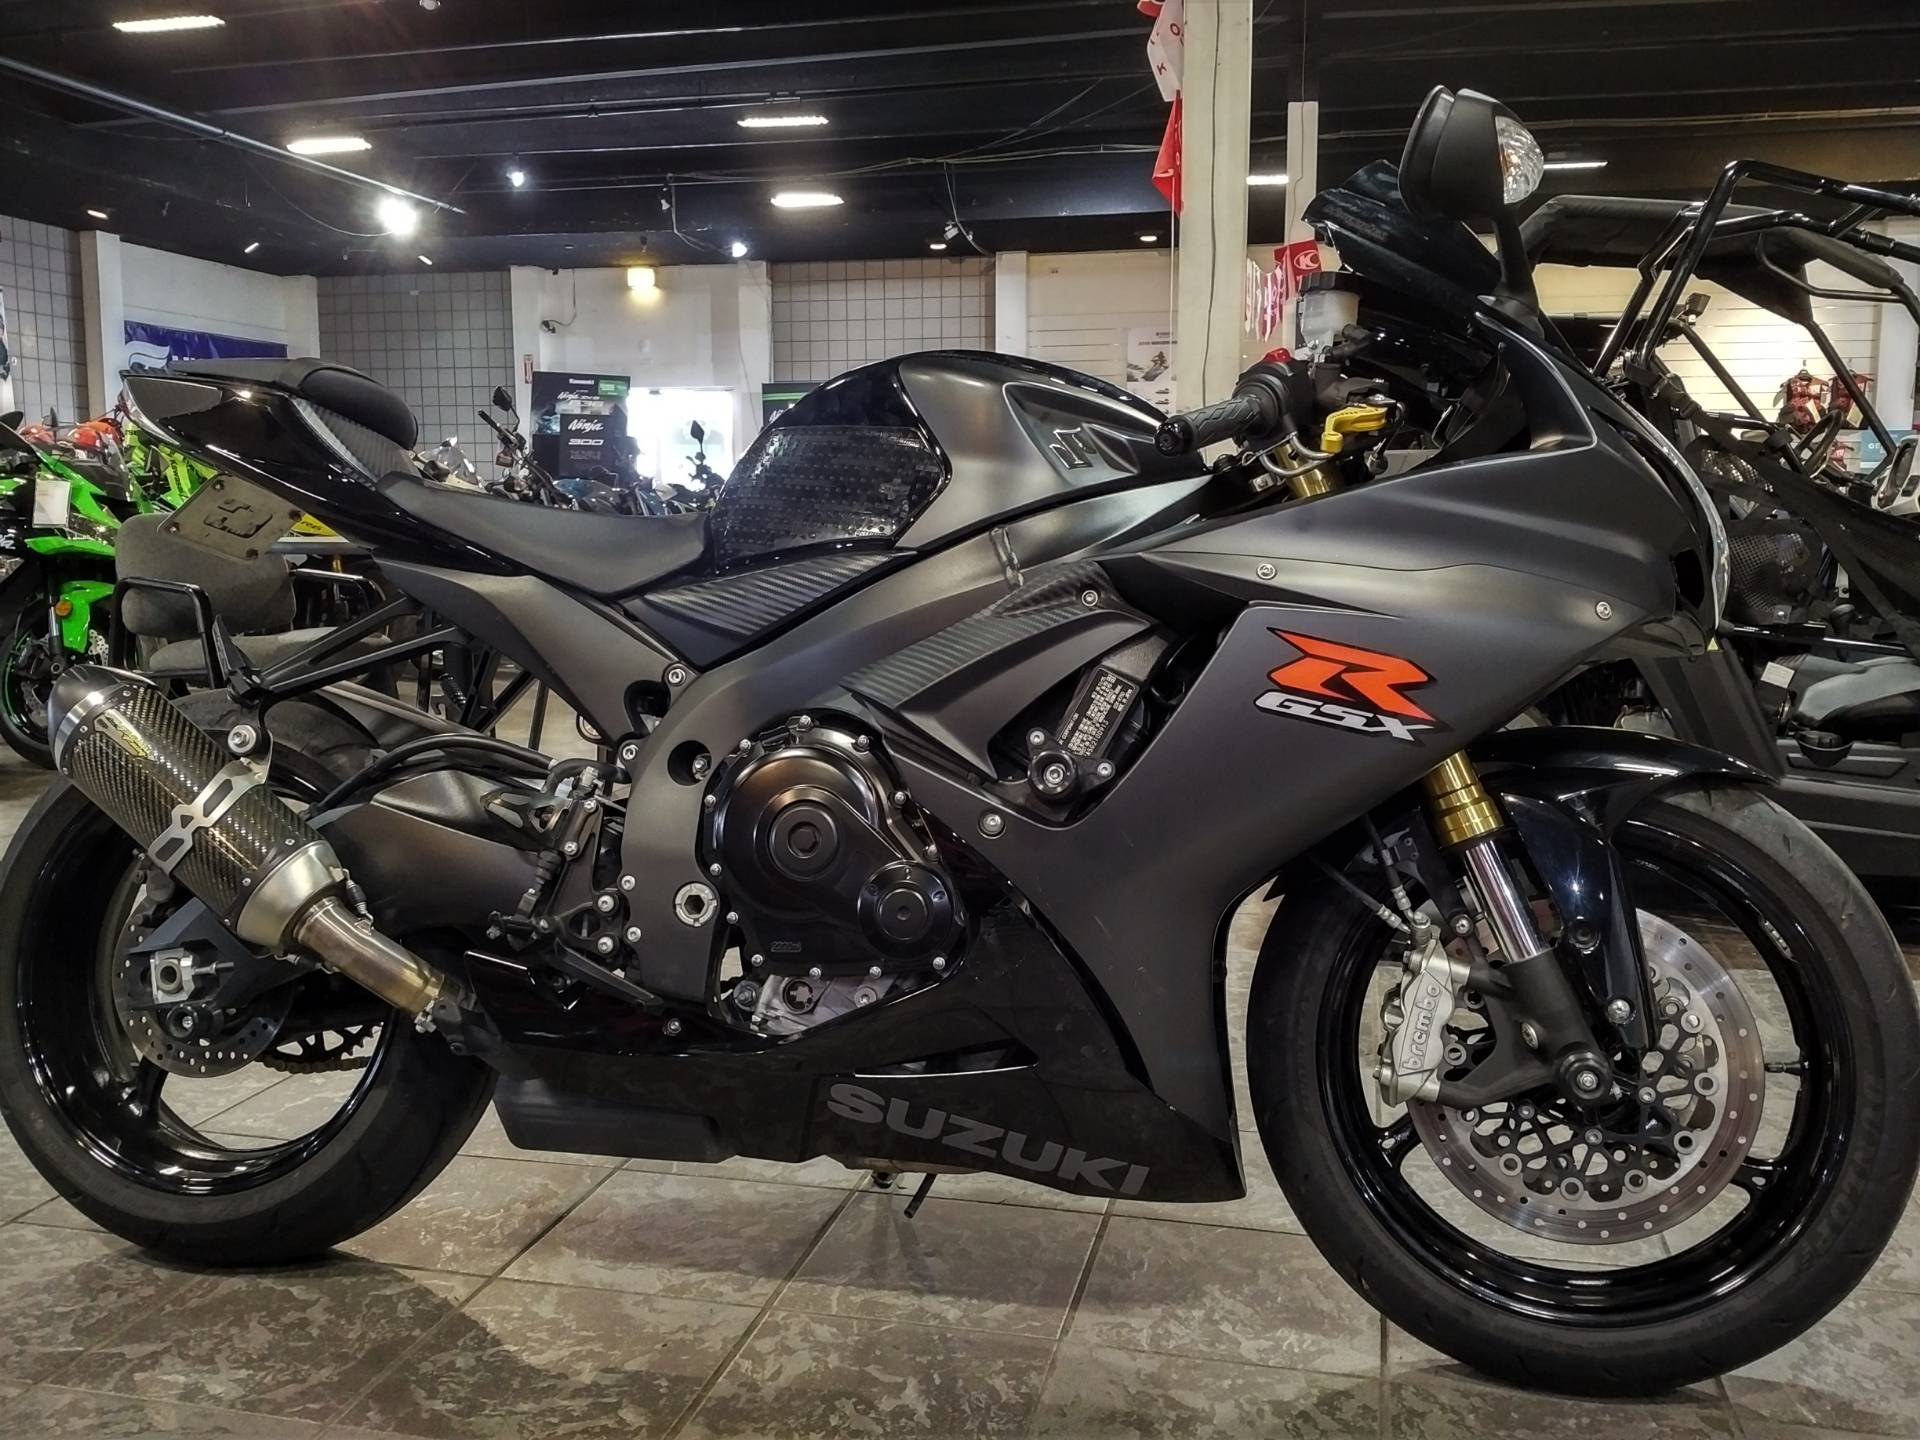 2016 Suzuki GSX-R750 in Salinas, California - Photo 1